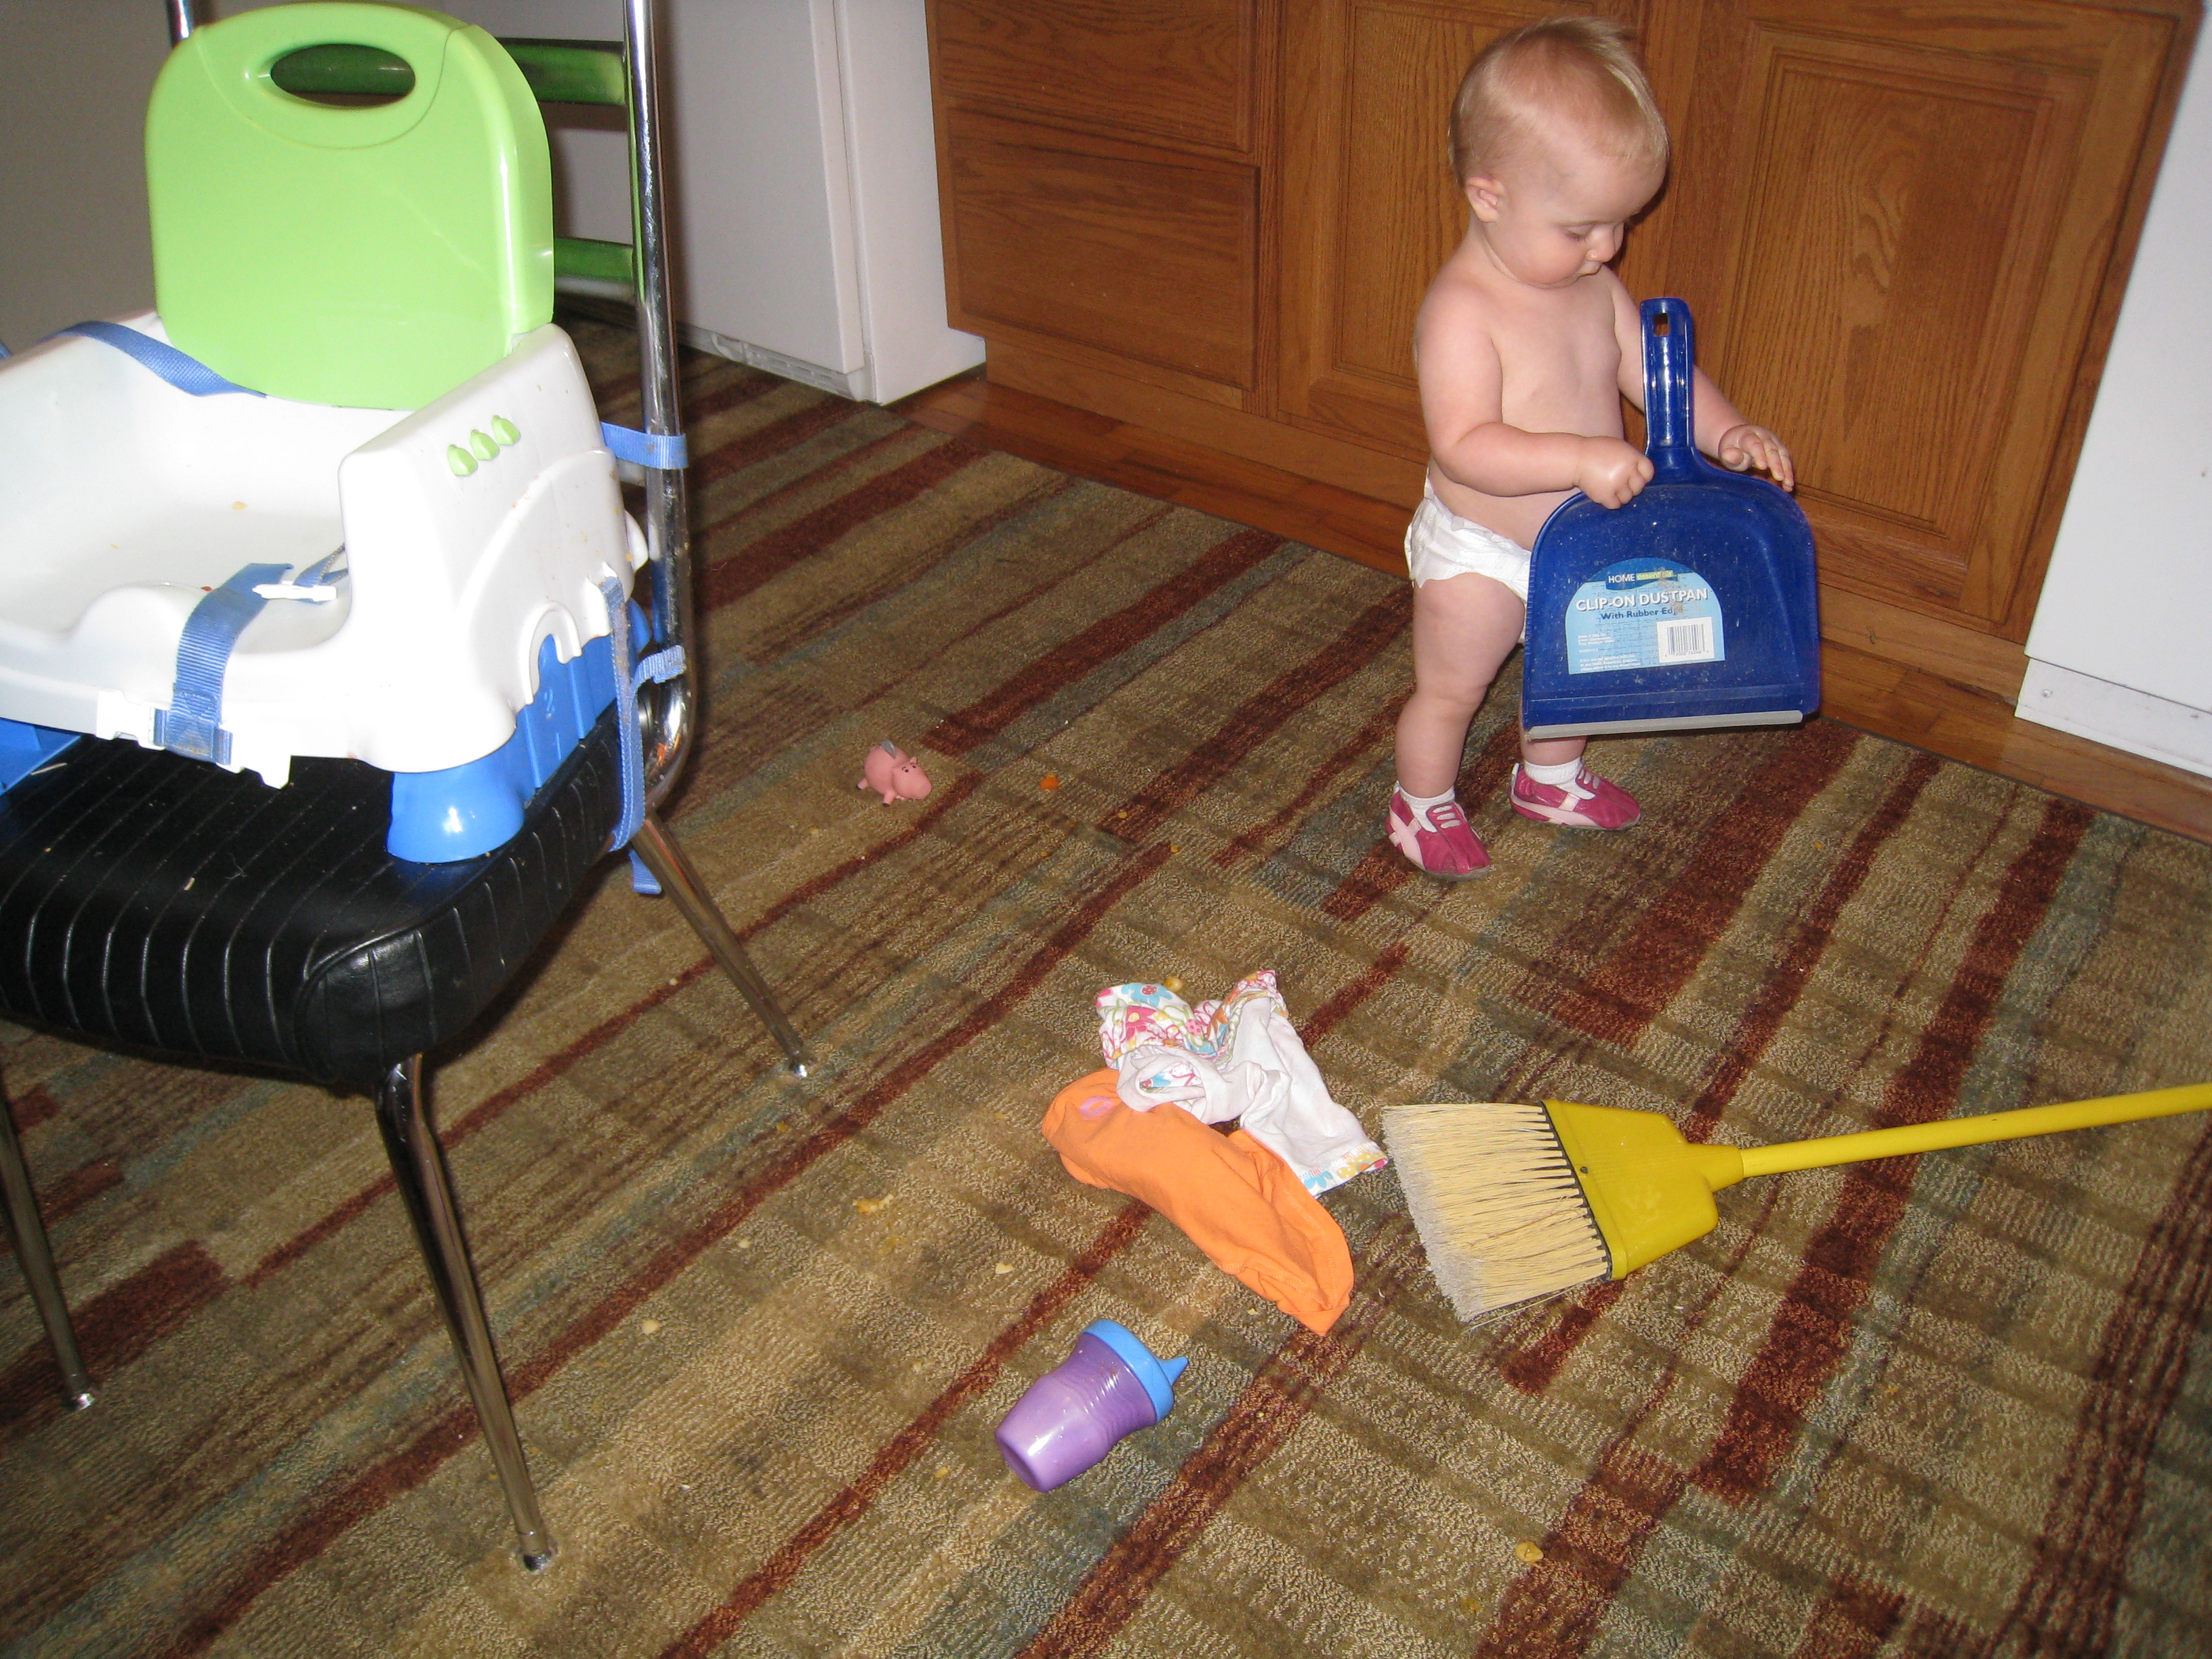 kivrin and the dustpan